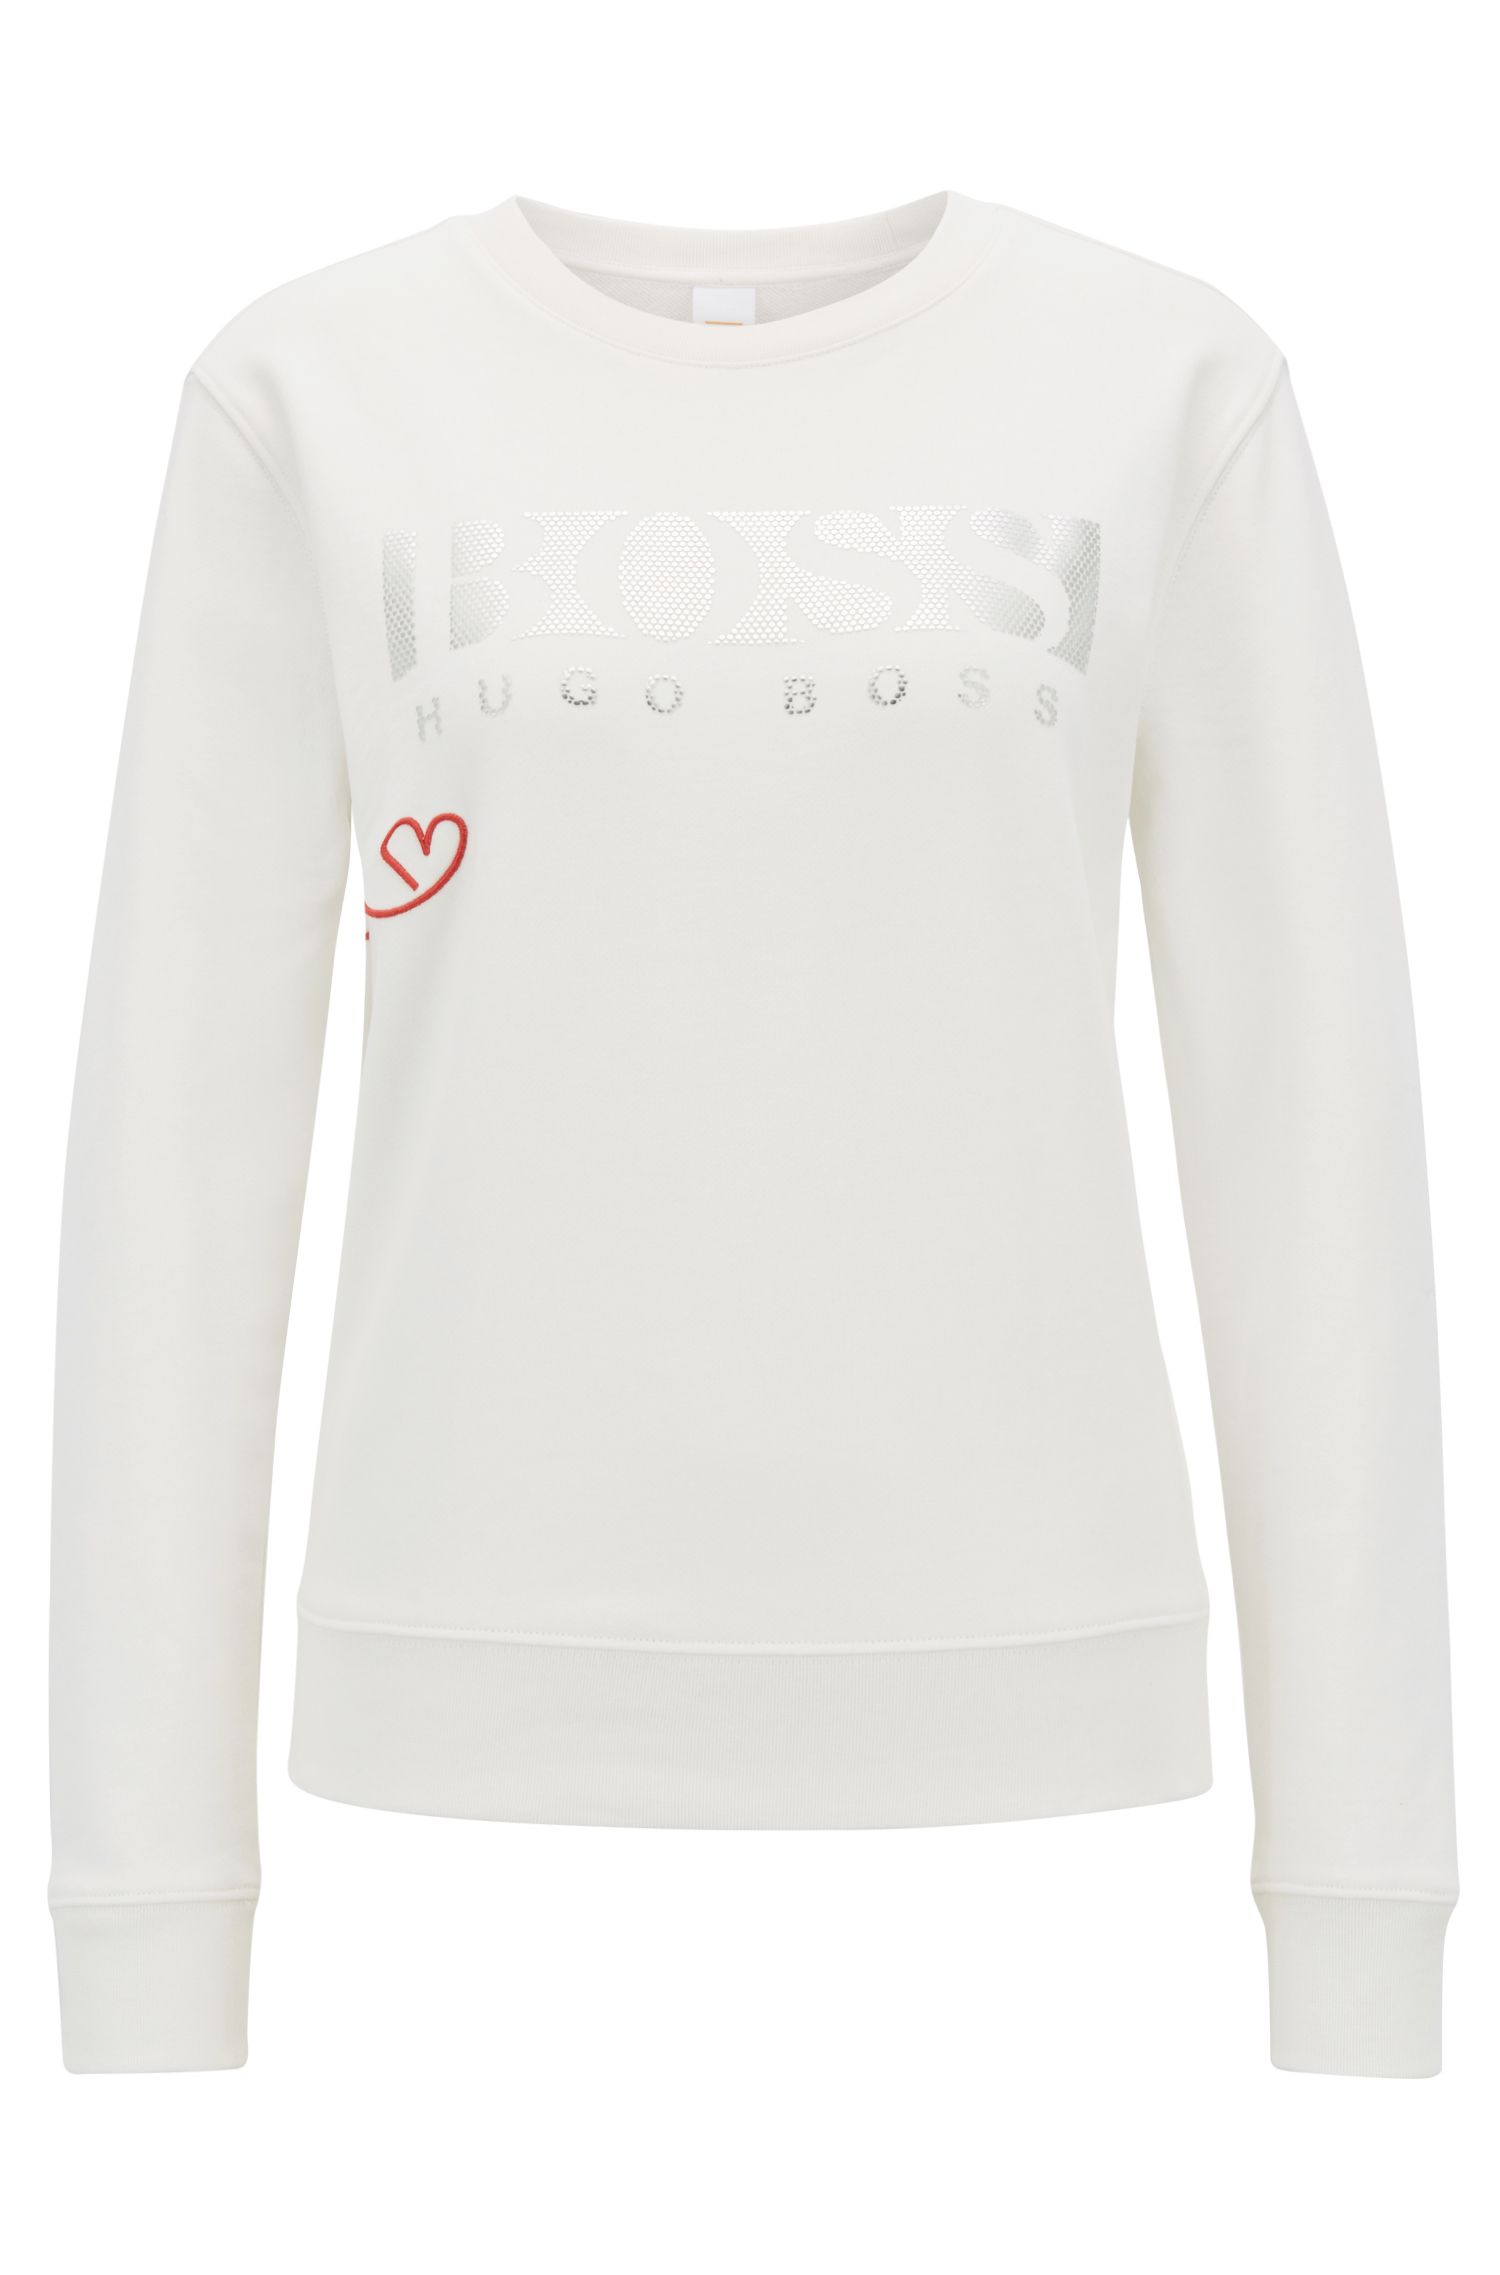 French-terry sweater with three-dimensional metallic logo